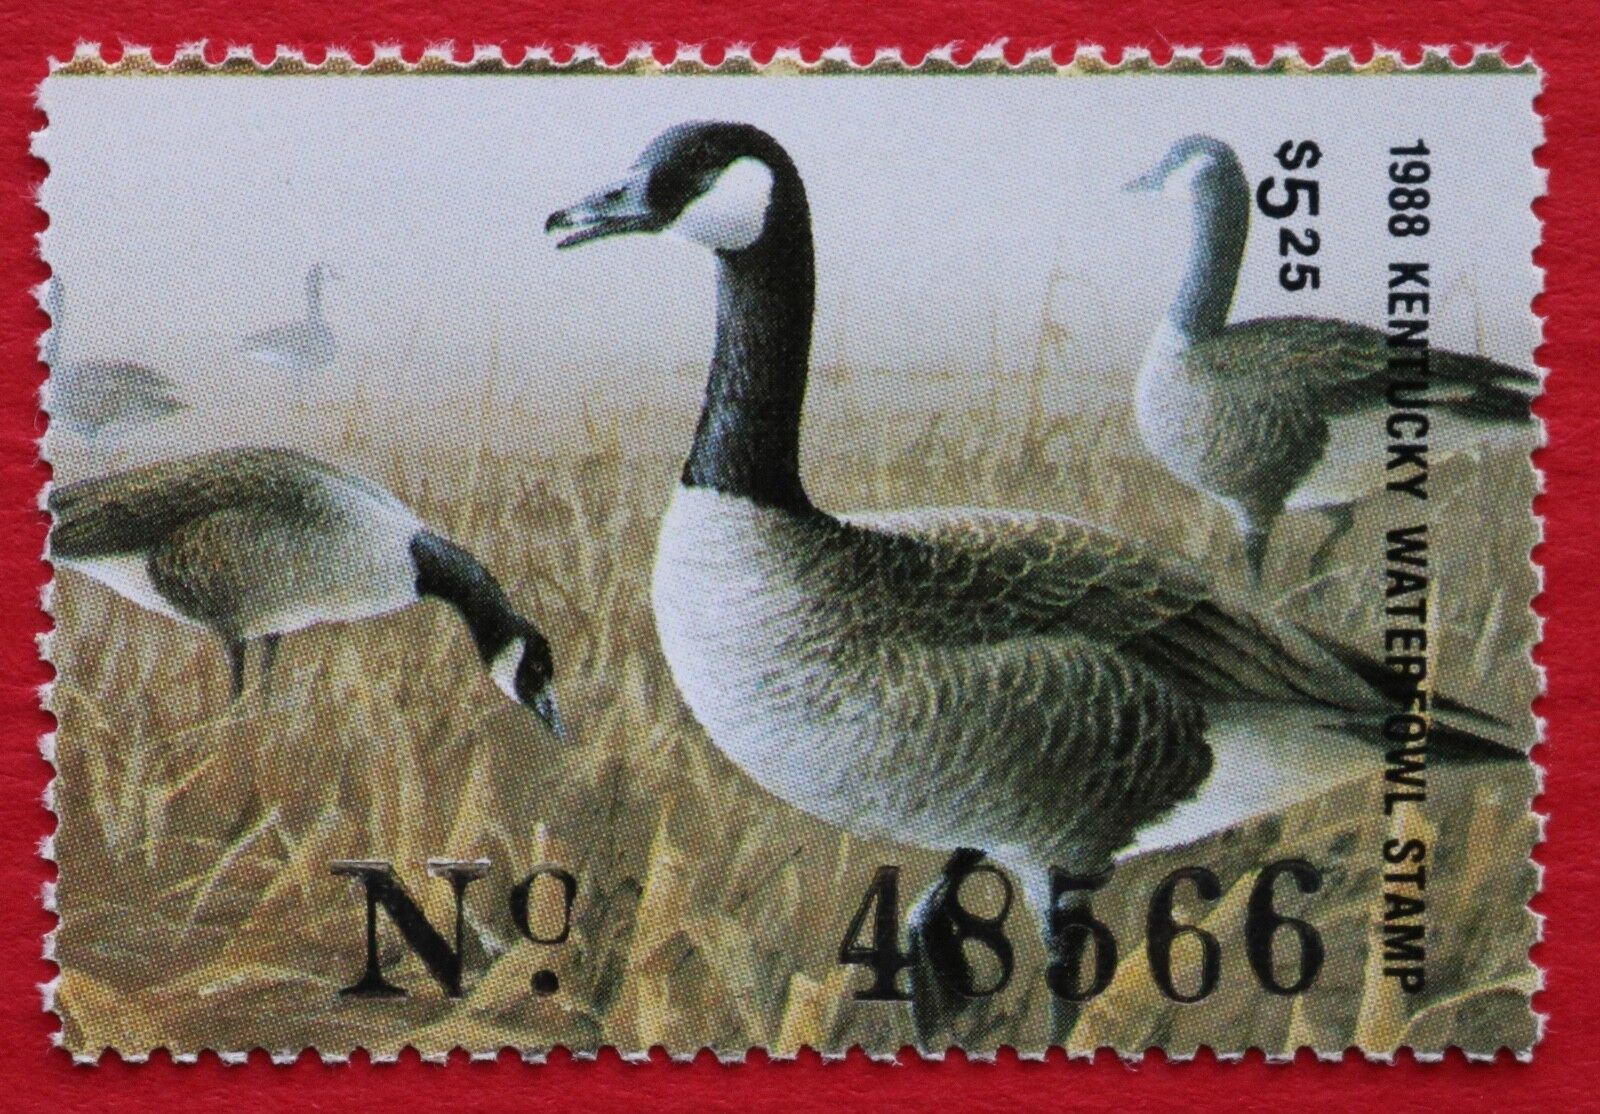 CLEARANCE KY04 1988 Kentucky Waterfowl Stamp - $4.00